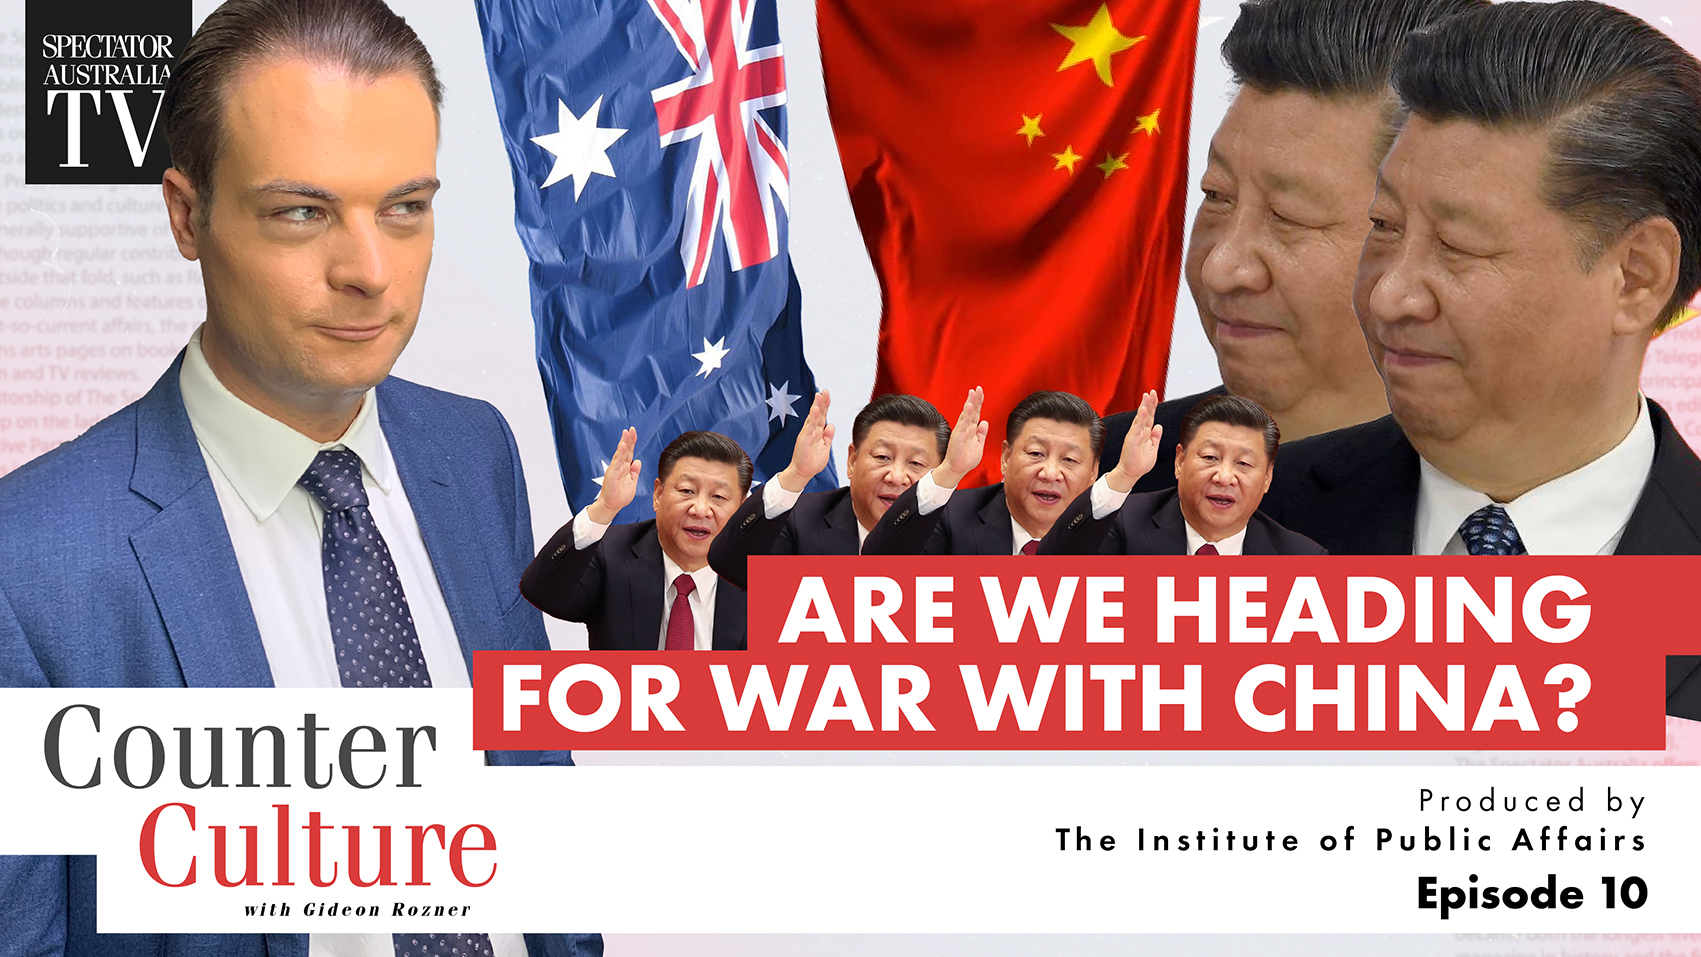 ARE WE HEADING FOR WAR WITH CHINA? | CounterCulture Episode 10